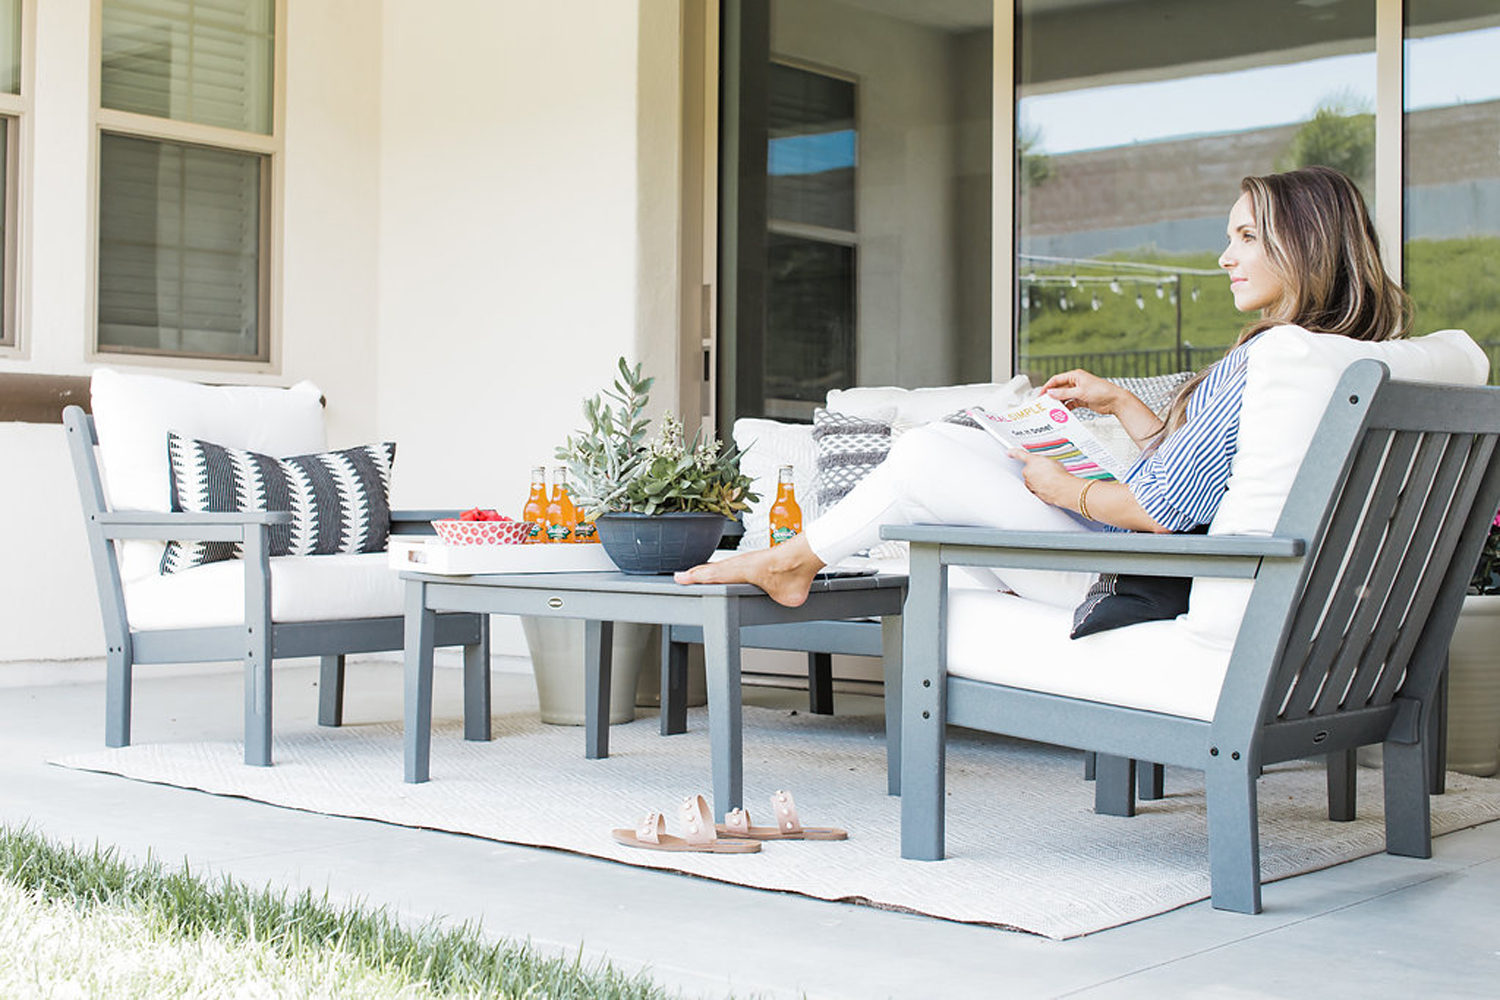 Merrick's Art Polywood outdoor Living Room Furniture